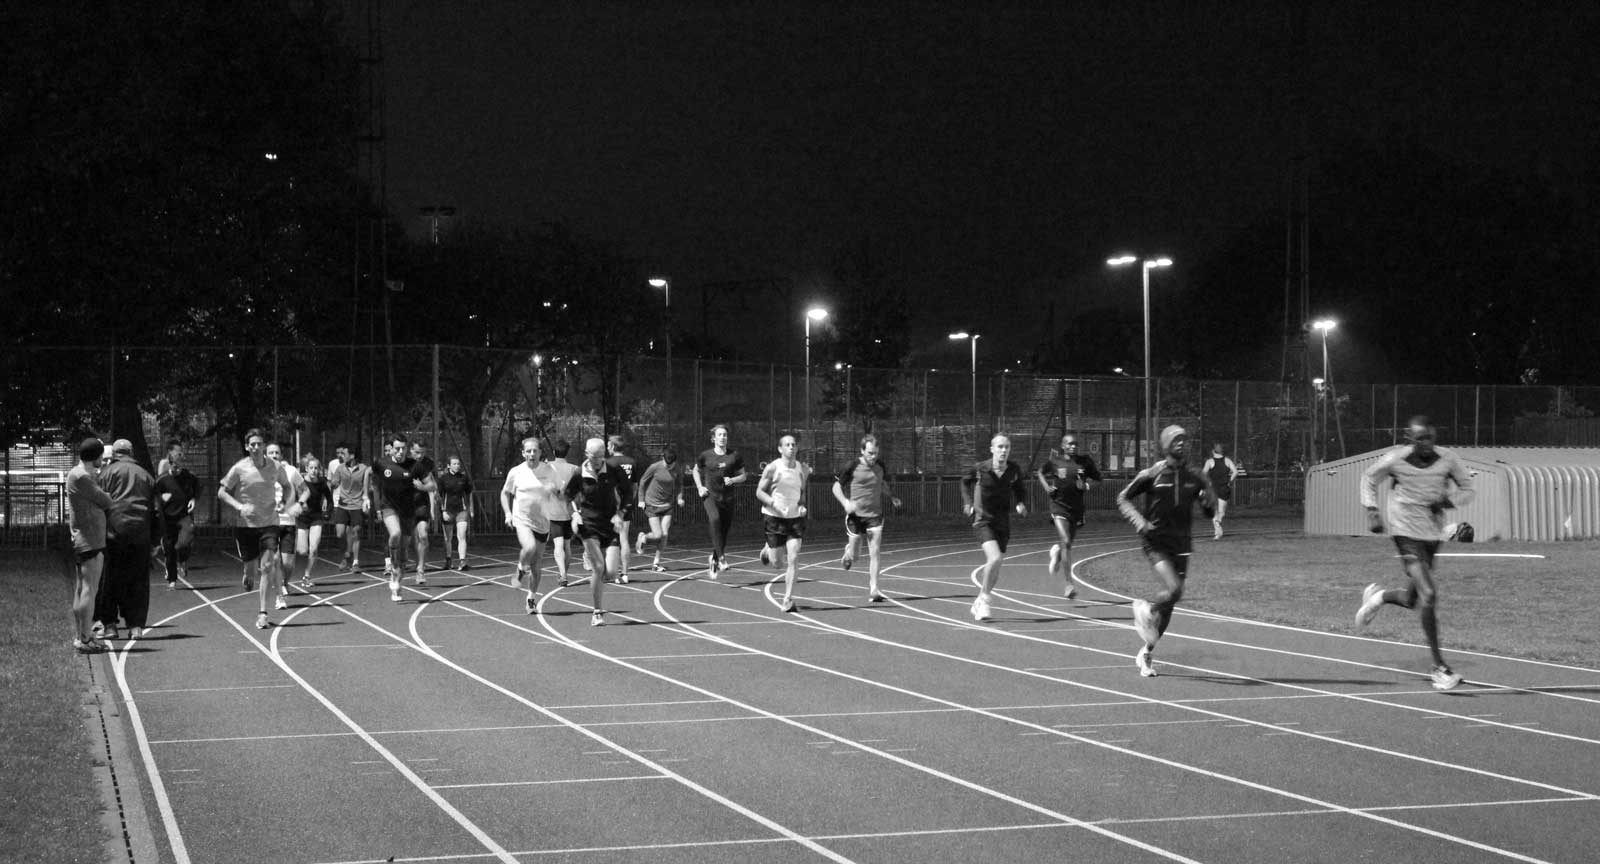 The Running Works Tuesday track sessions at Mile End Stadium